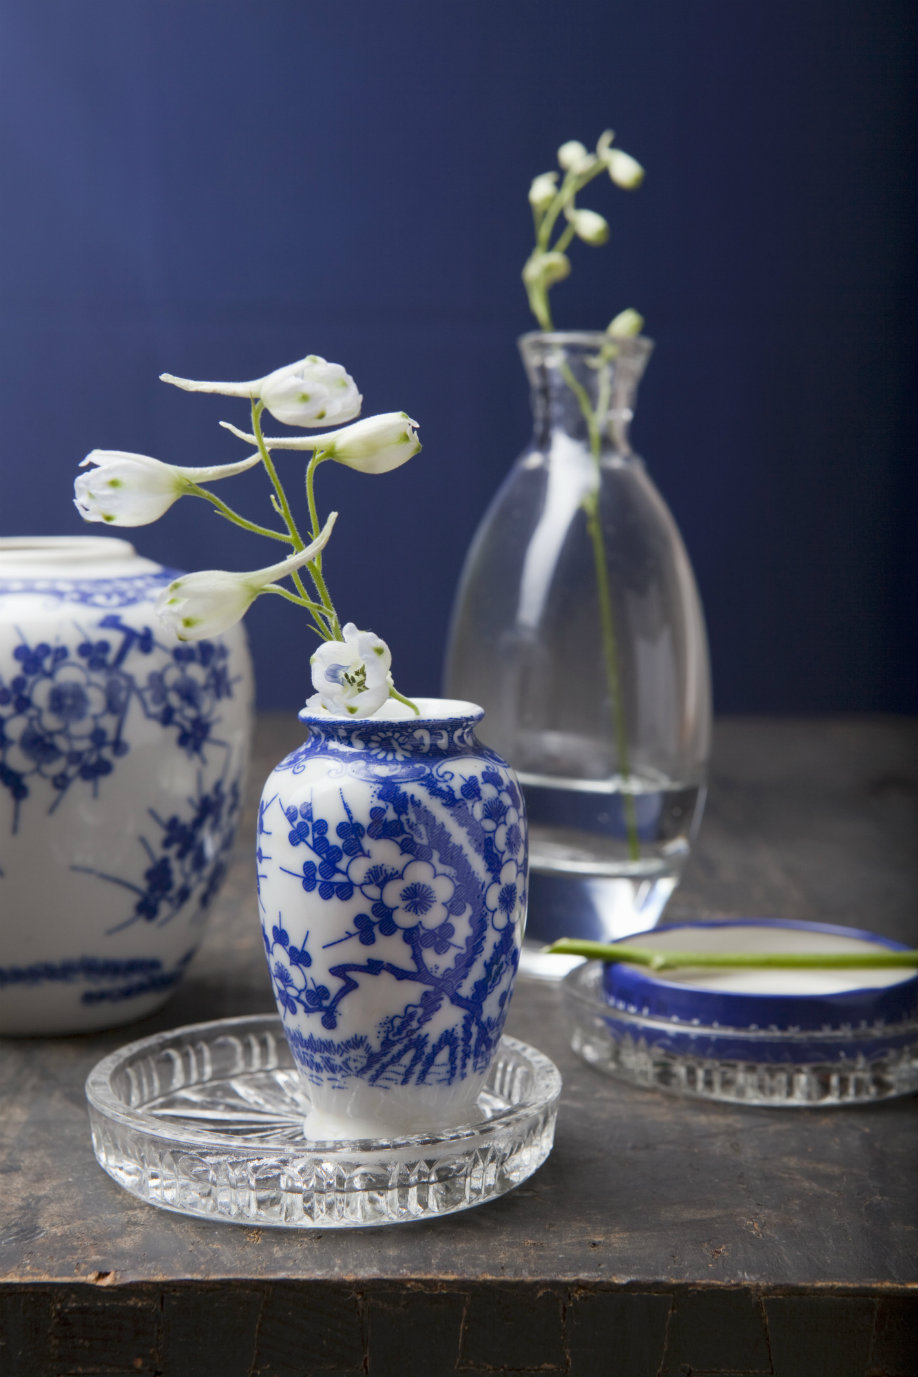 westwing-chinoiserie-vase-blau-weißwestwing-chinoiserie-vase-blau-weiß